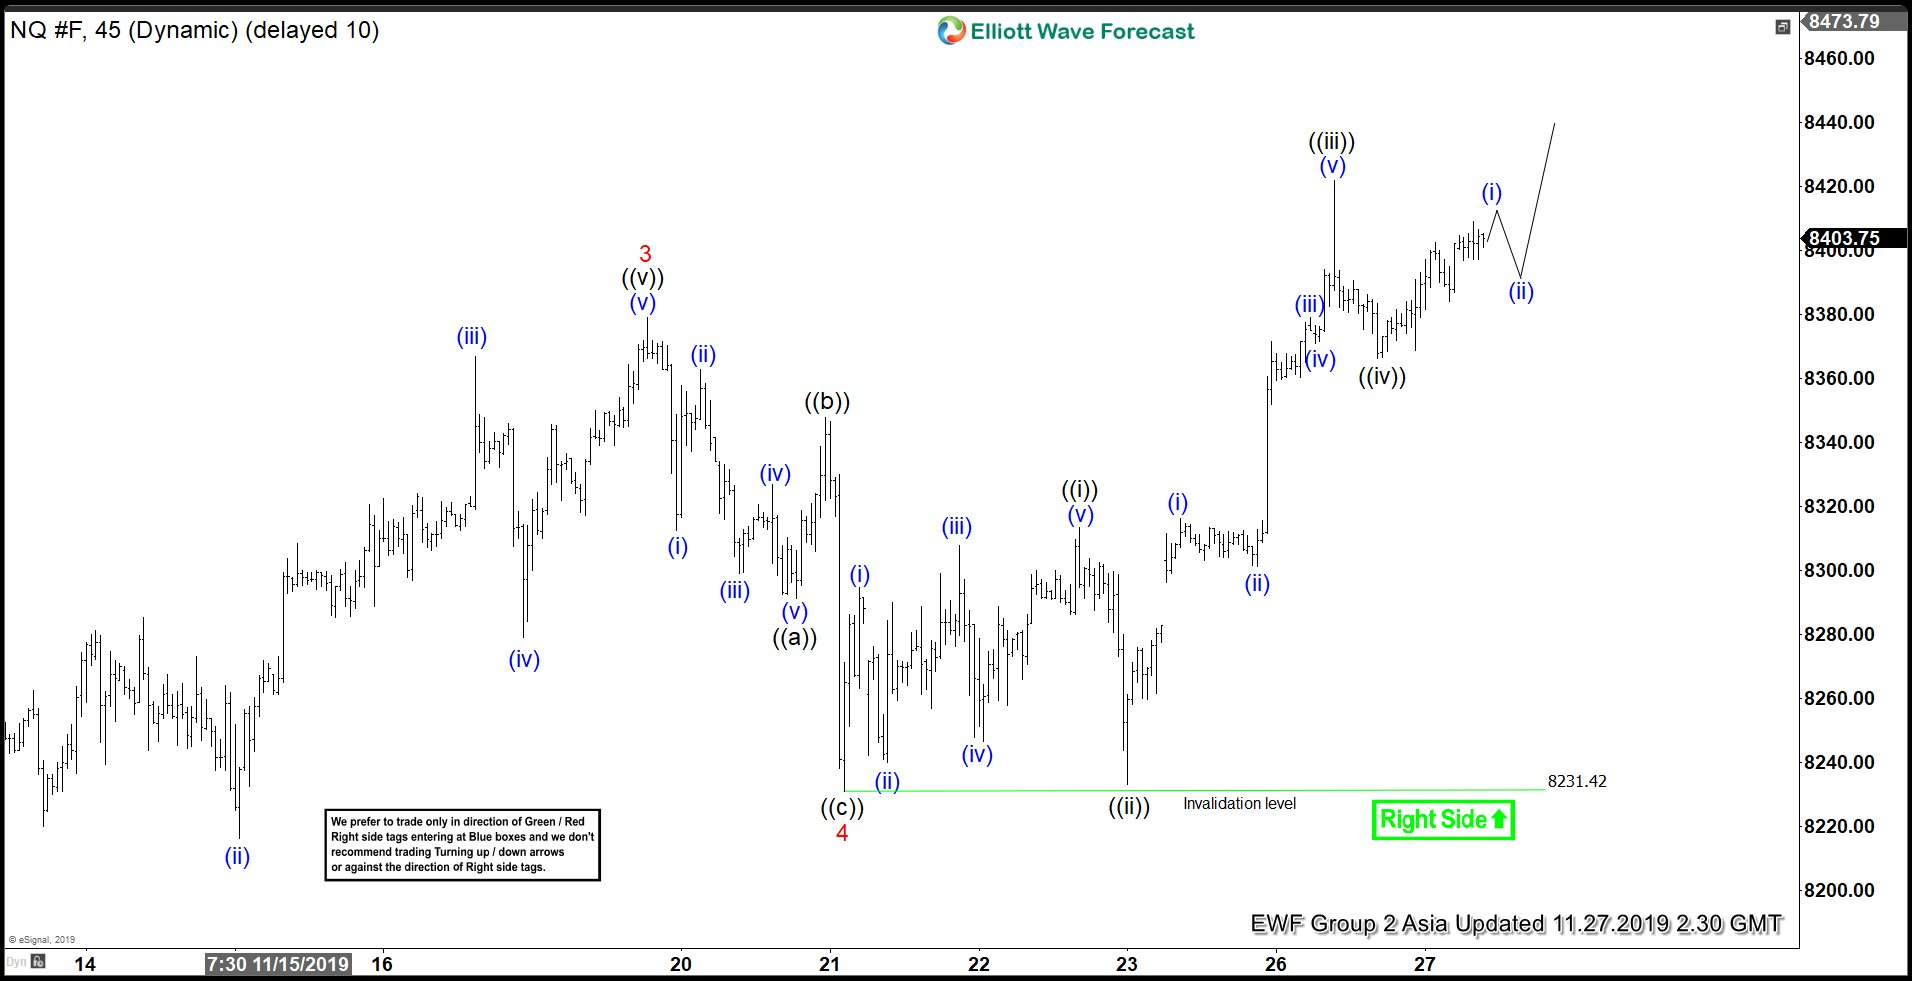 Elliott Wave View: Nasdaq (NQ_F) Extending Higher as Impulse